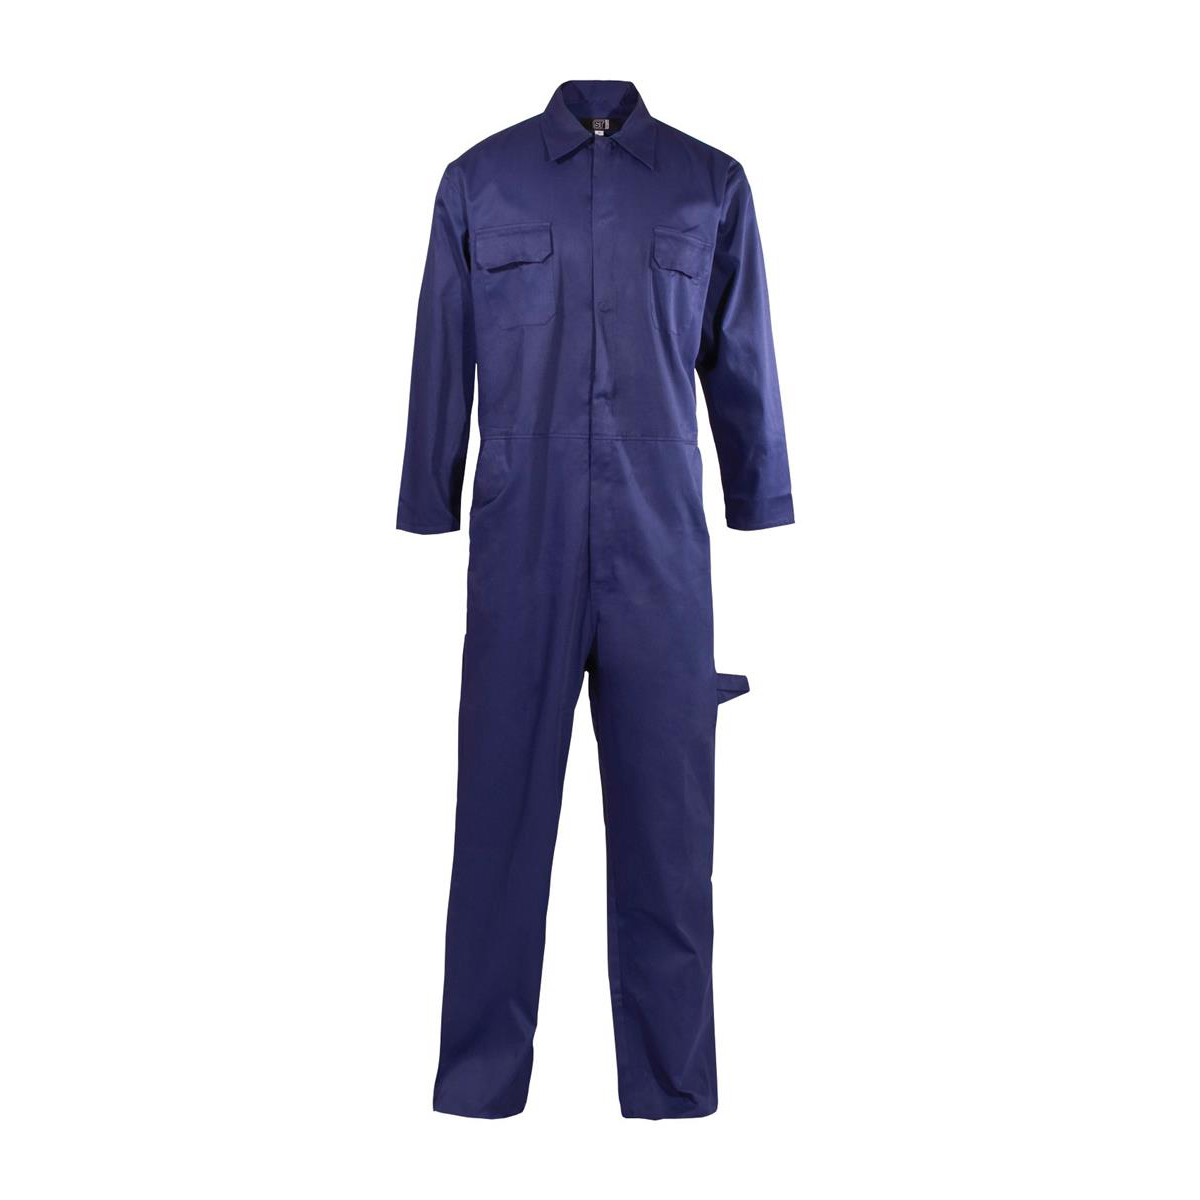 Coverall Basic with Popper Front Opening Polycotton Extra Large Navy Approx 3 Day Leadtime